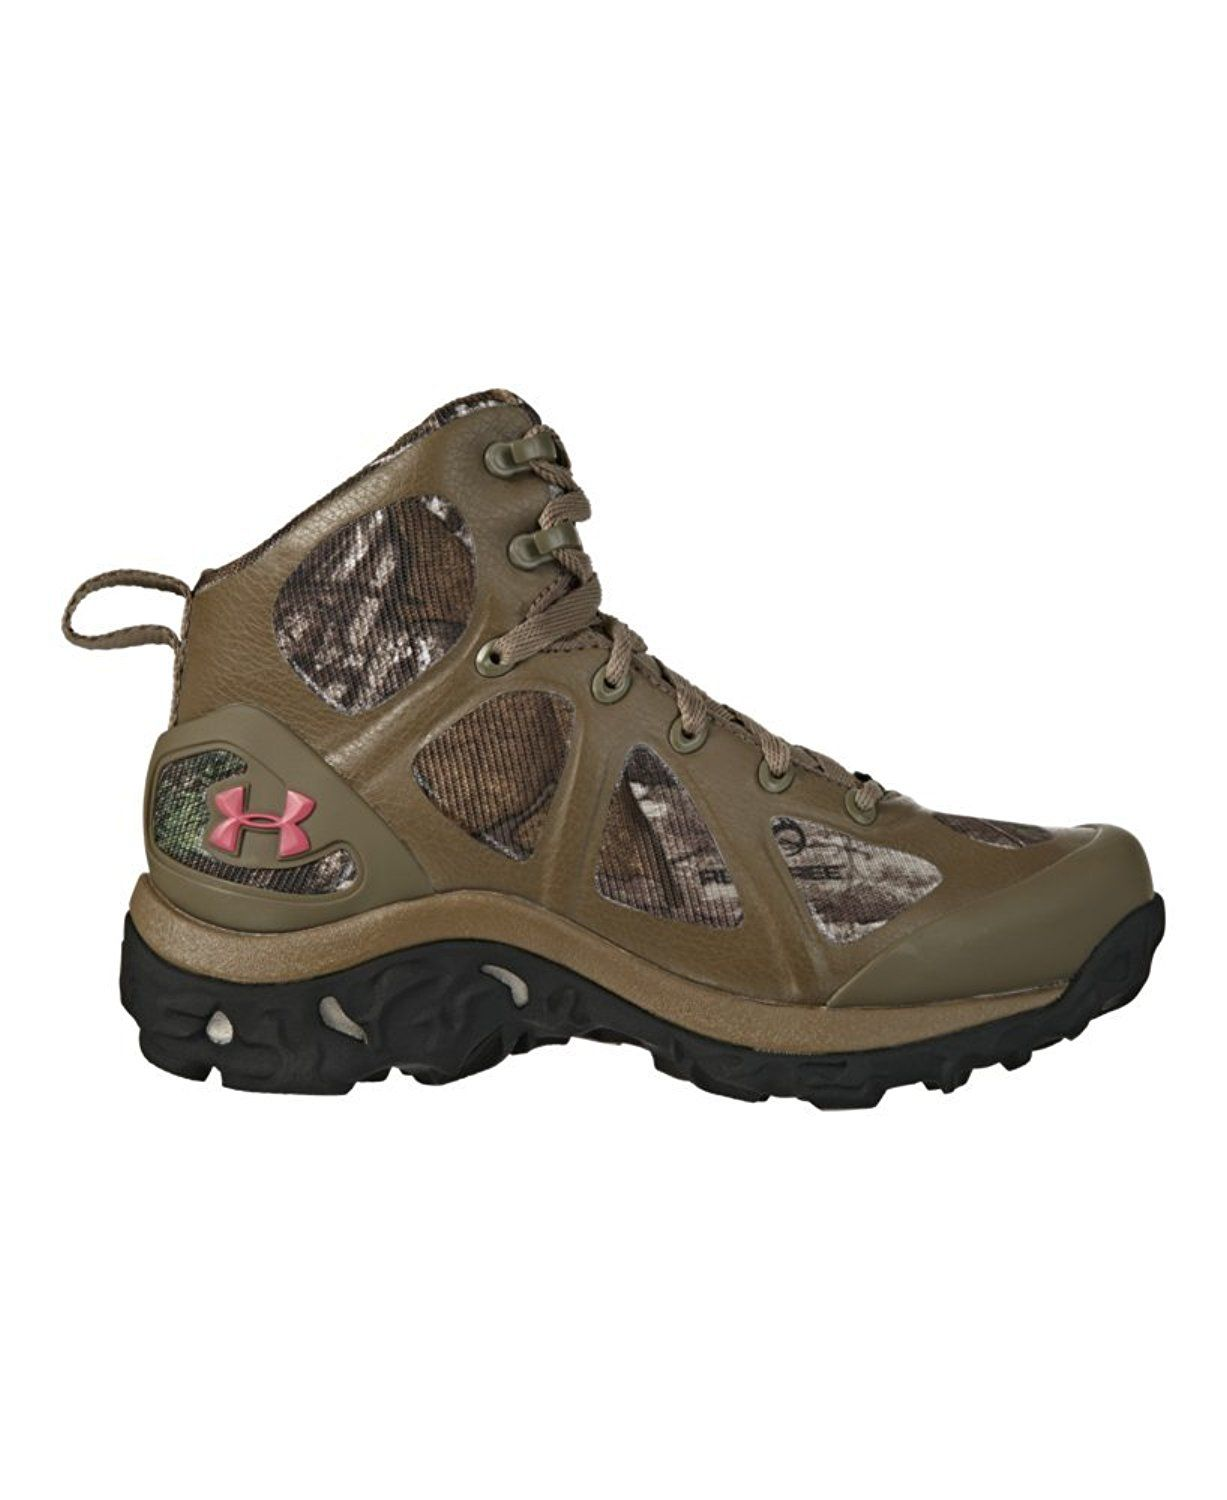 Reinvent Your Finest Females Serpent Evidence Boots